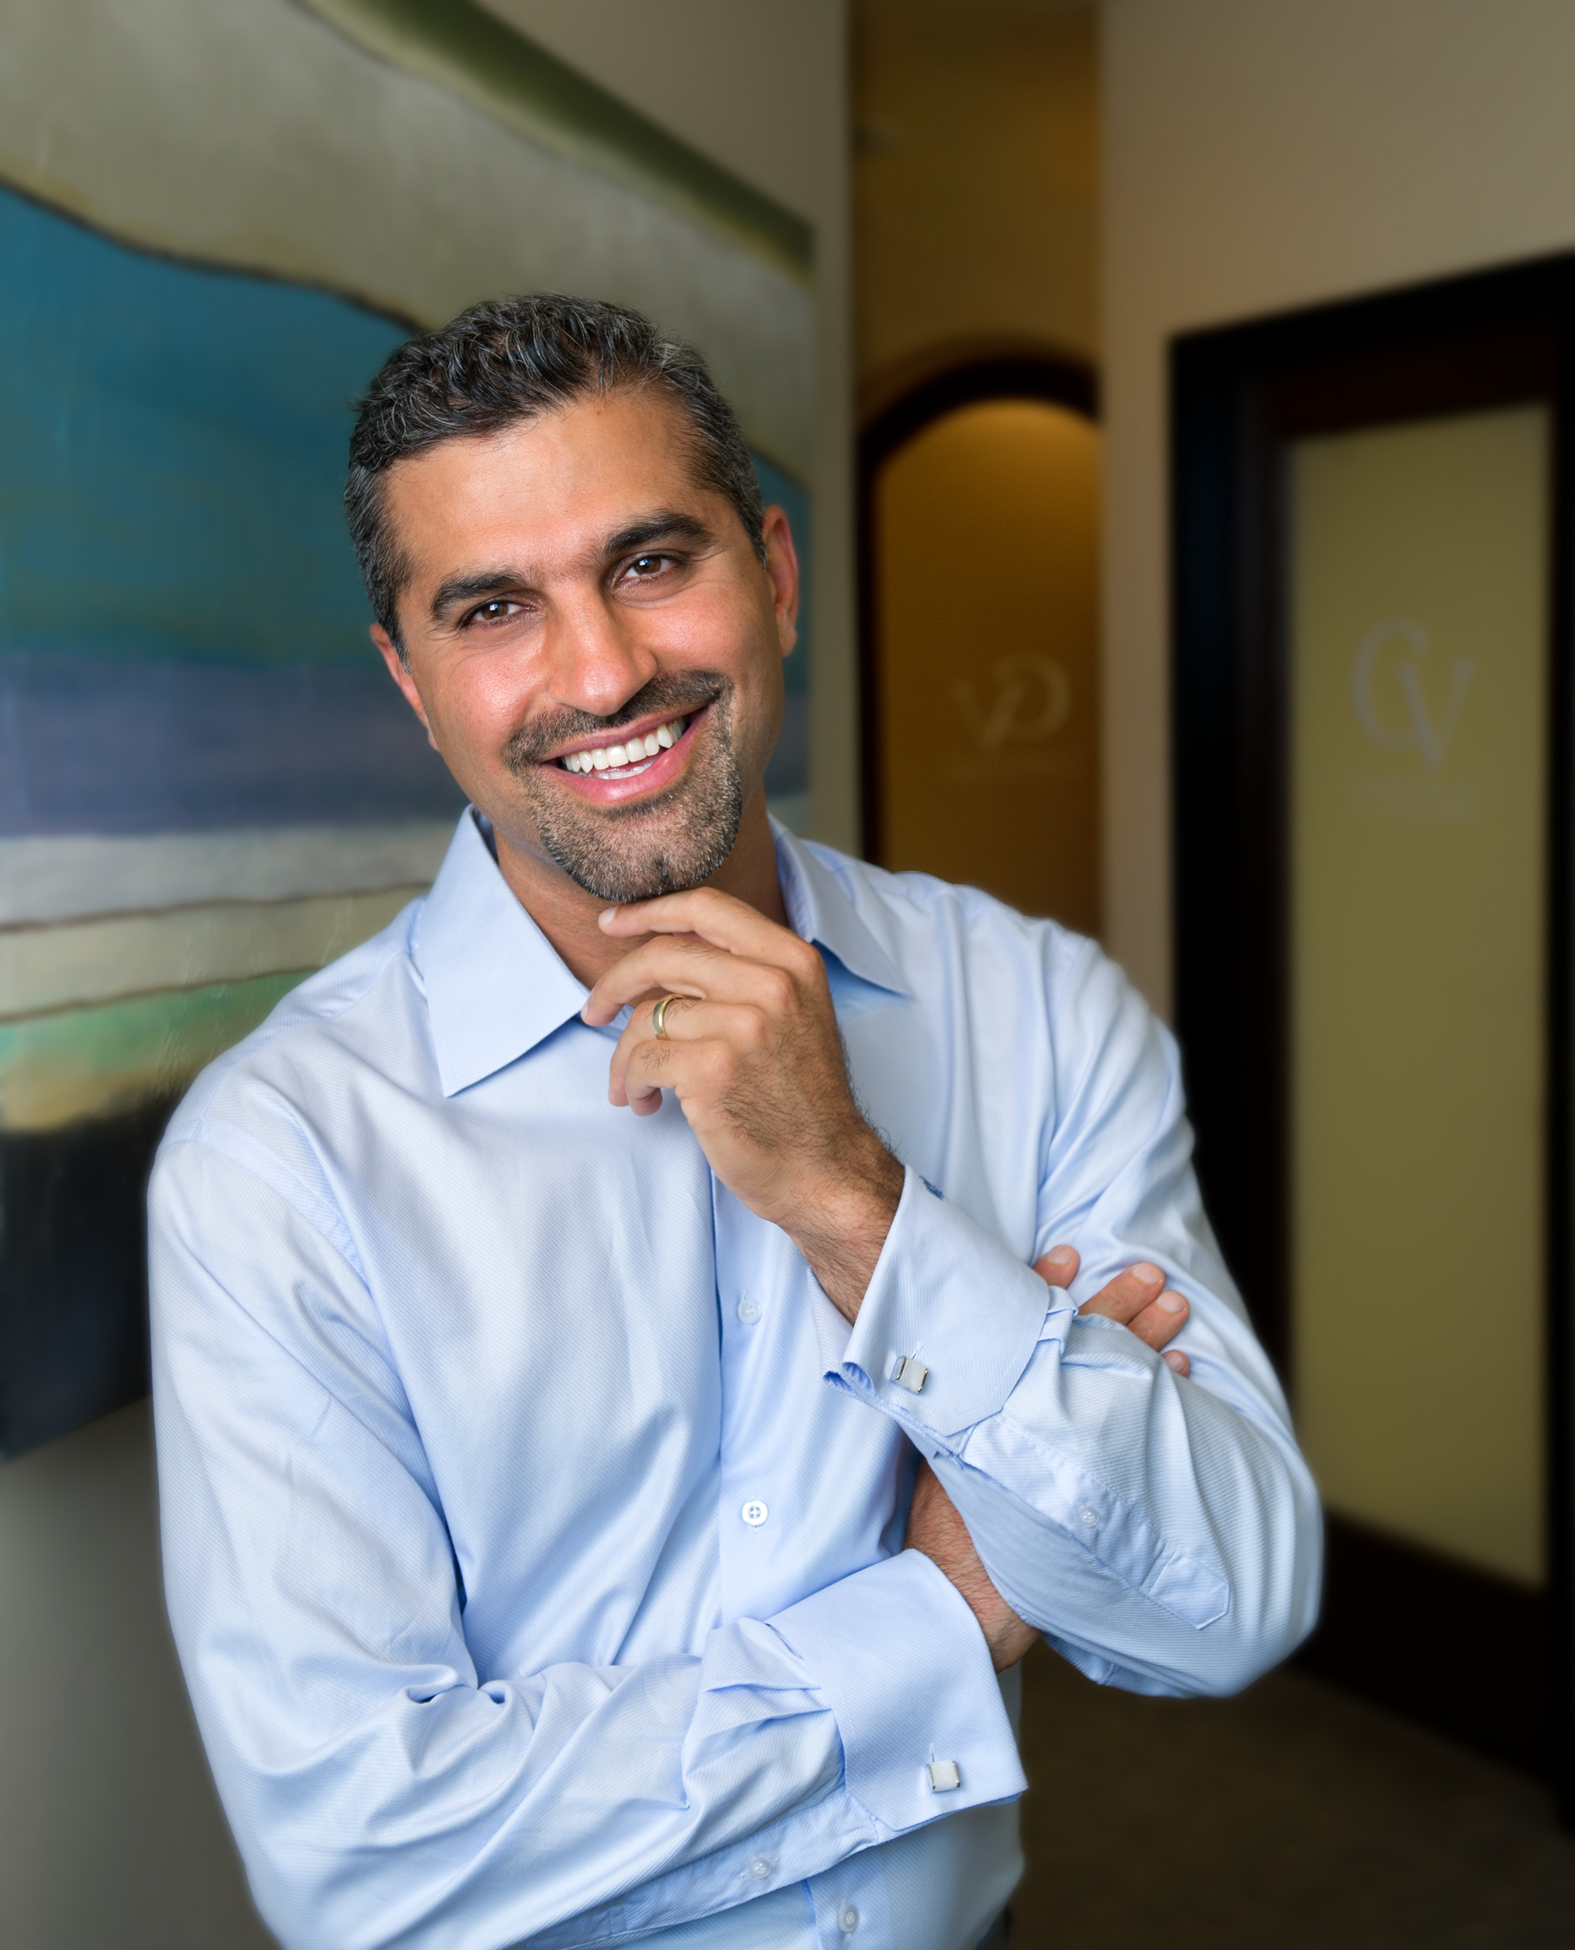 Board certified facial plastic surgeon in San Diego, Amir Karam MD